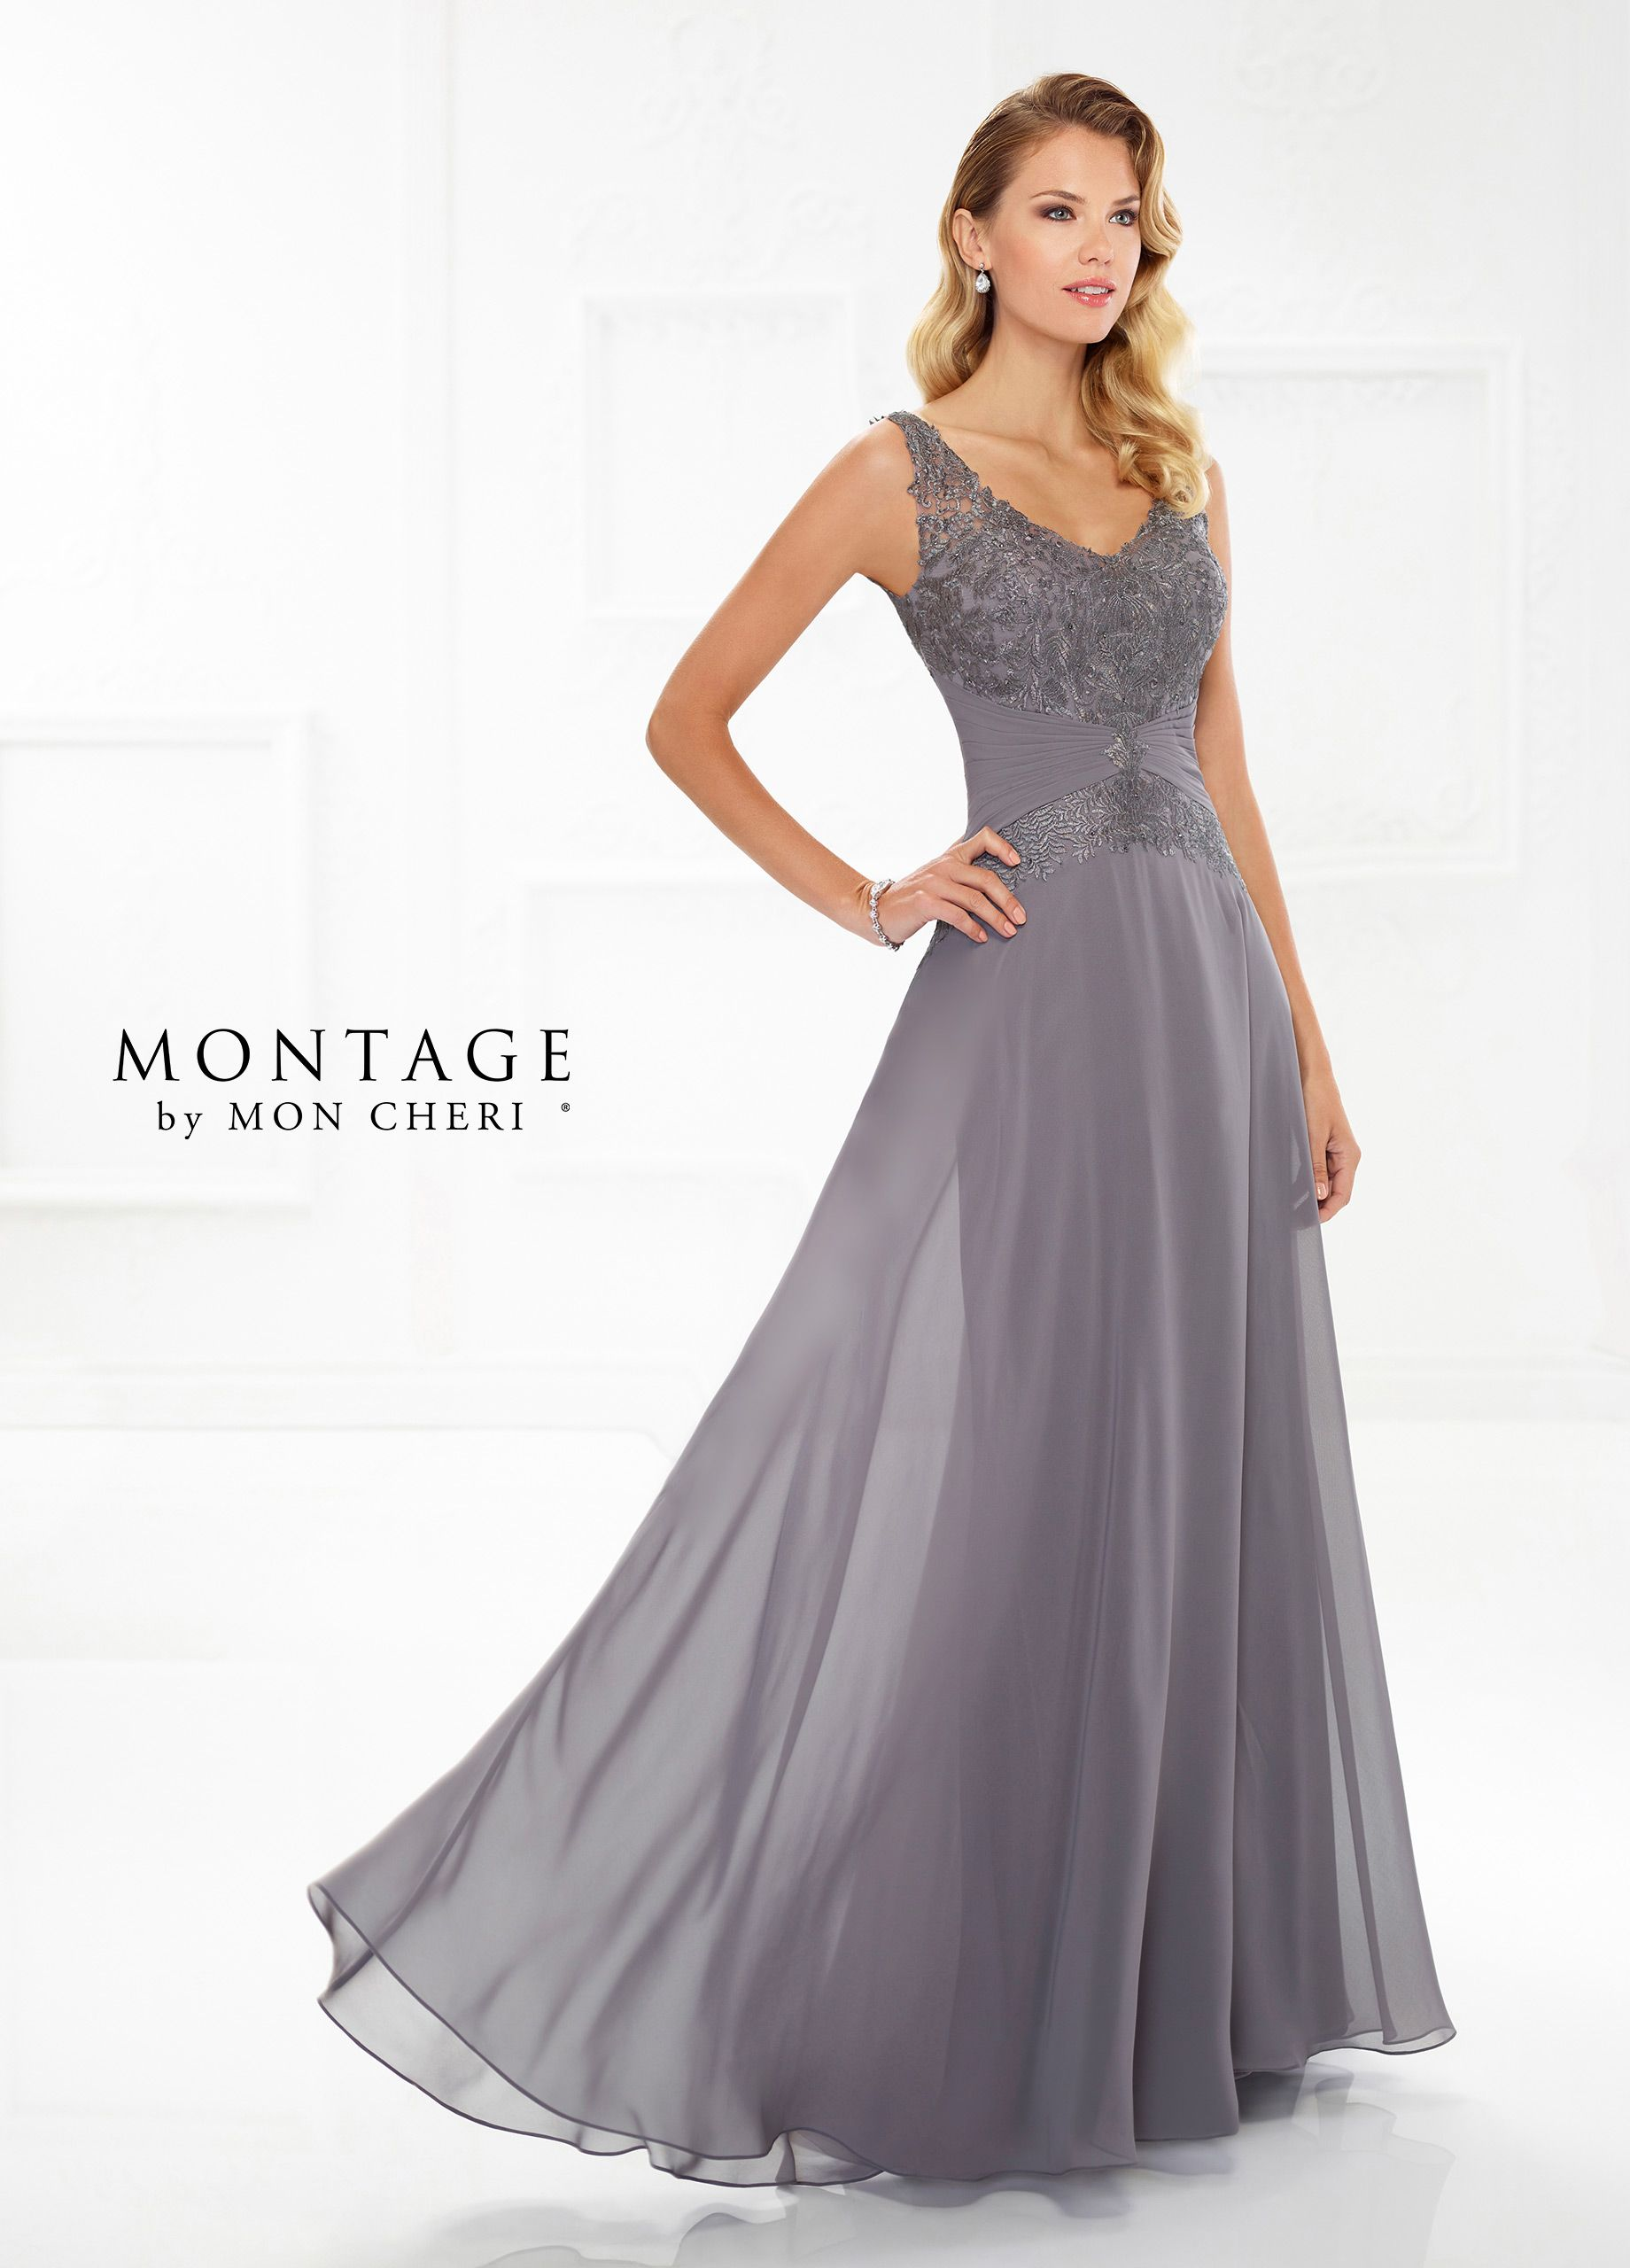 Montage by mon cheri illusions bodice and shawl